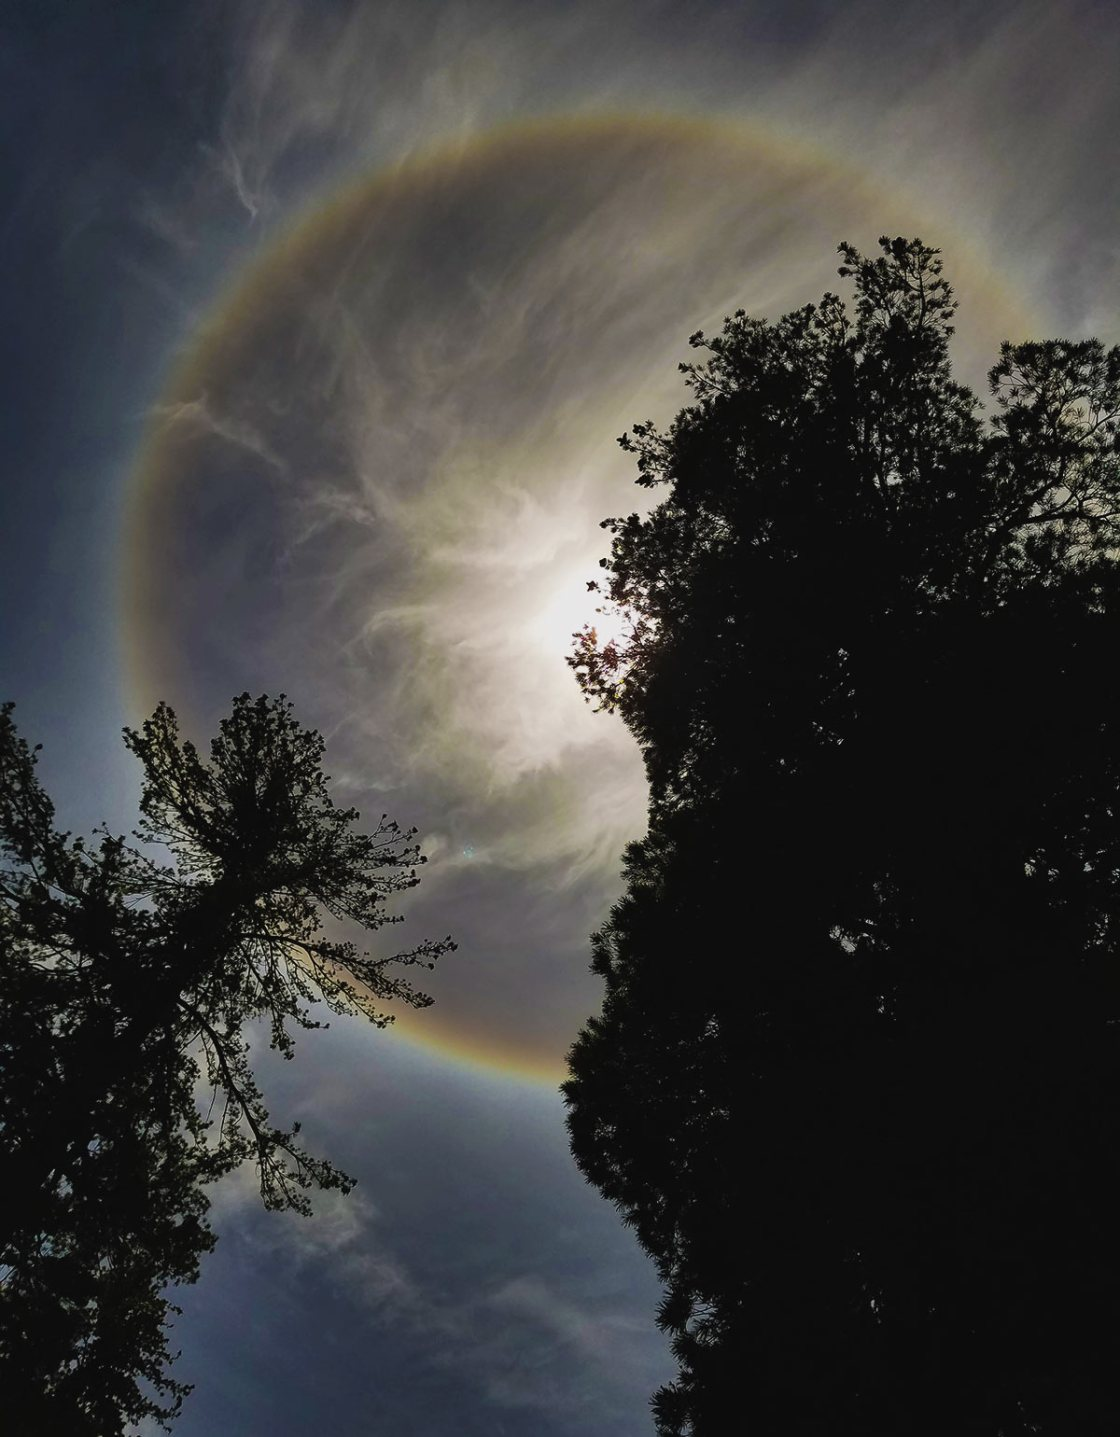 Rainbow halo around the sun and silhoutted trees